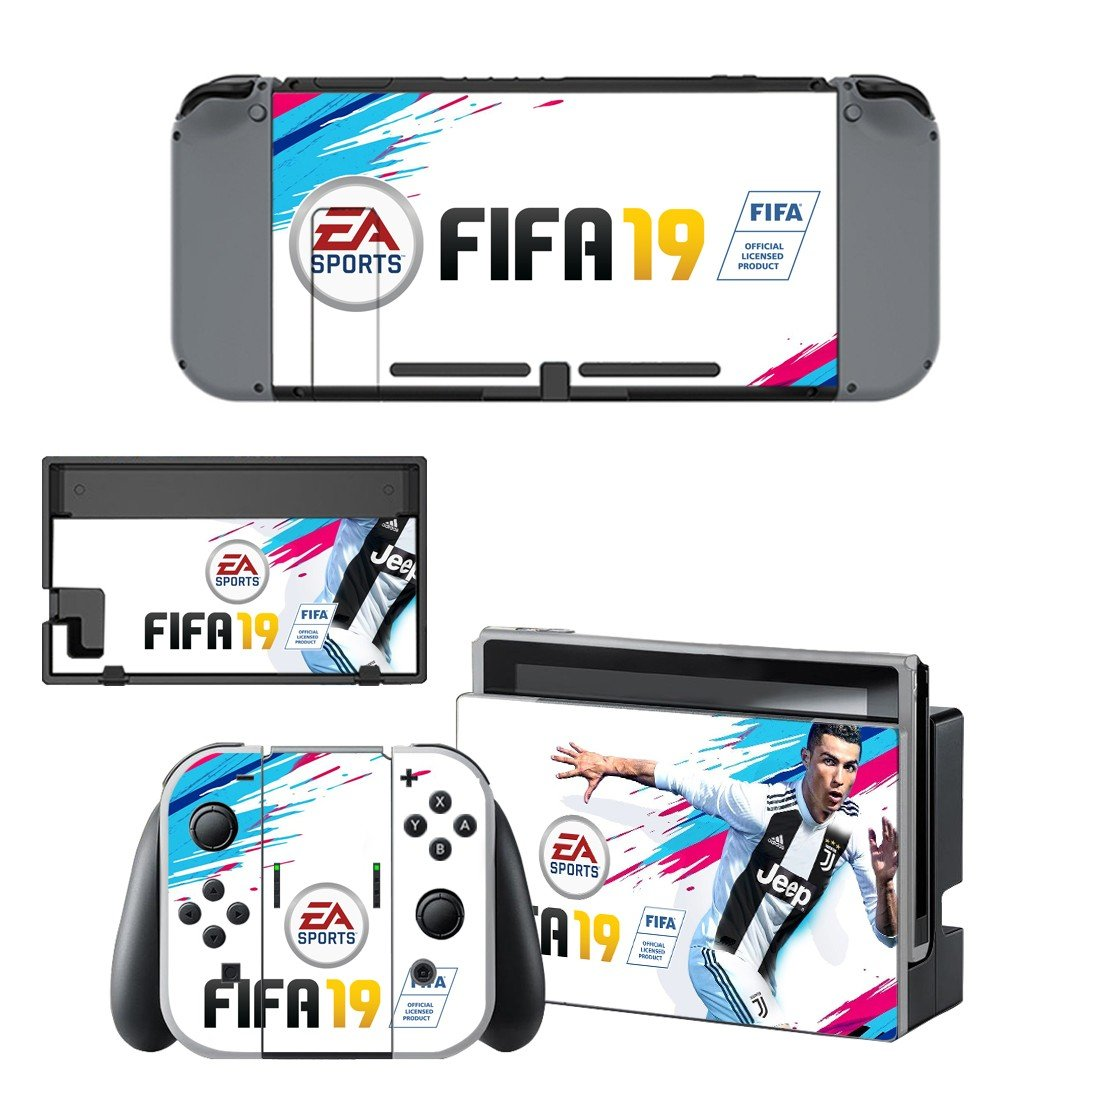 FIFA 19 Decal Skin Sticker for Nintendo Switch